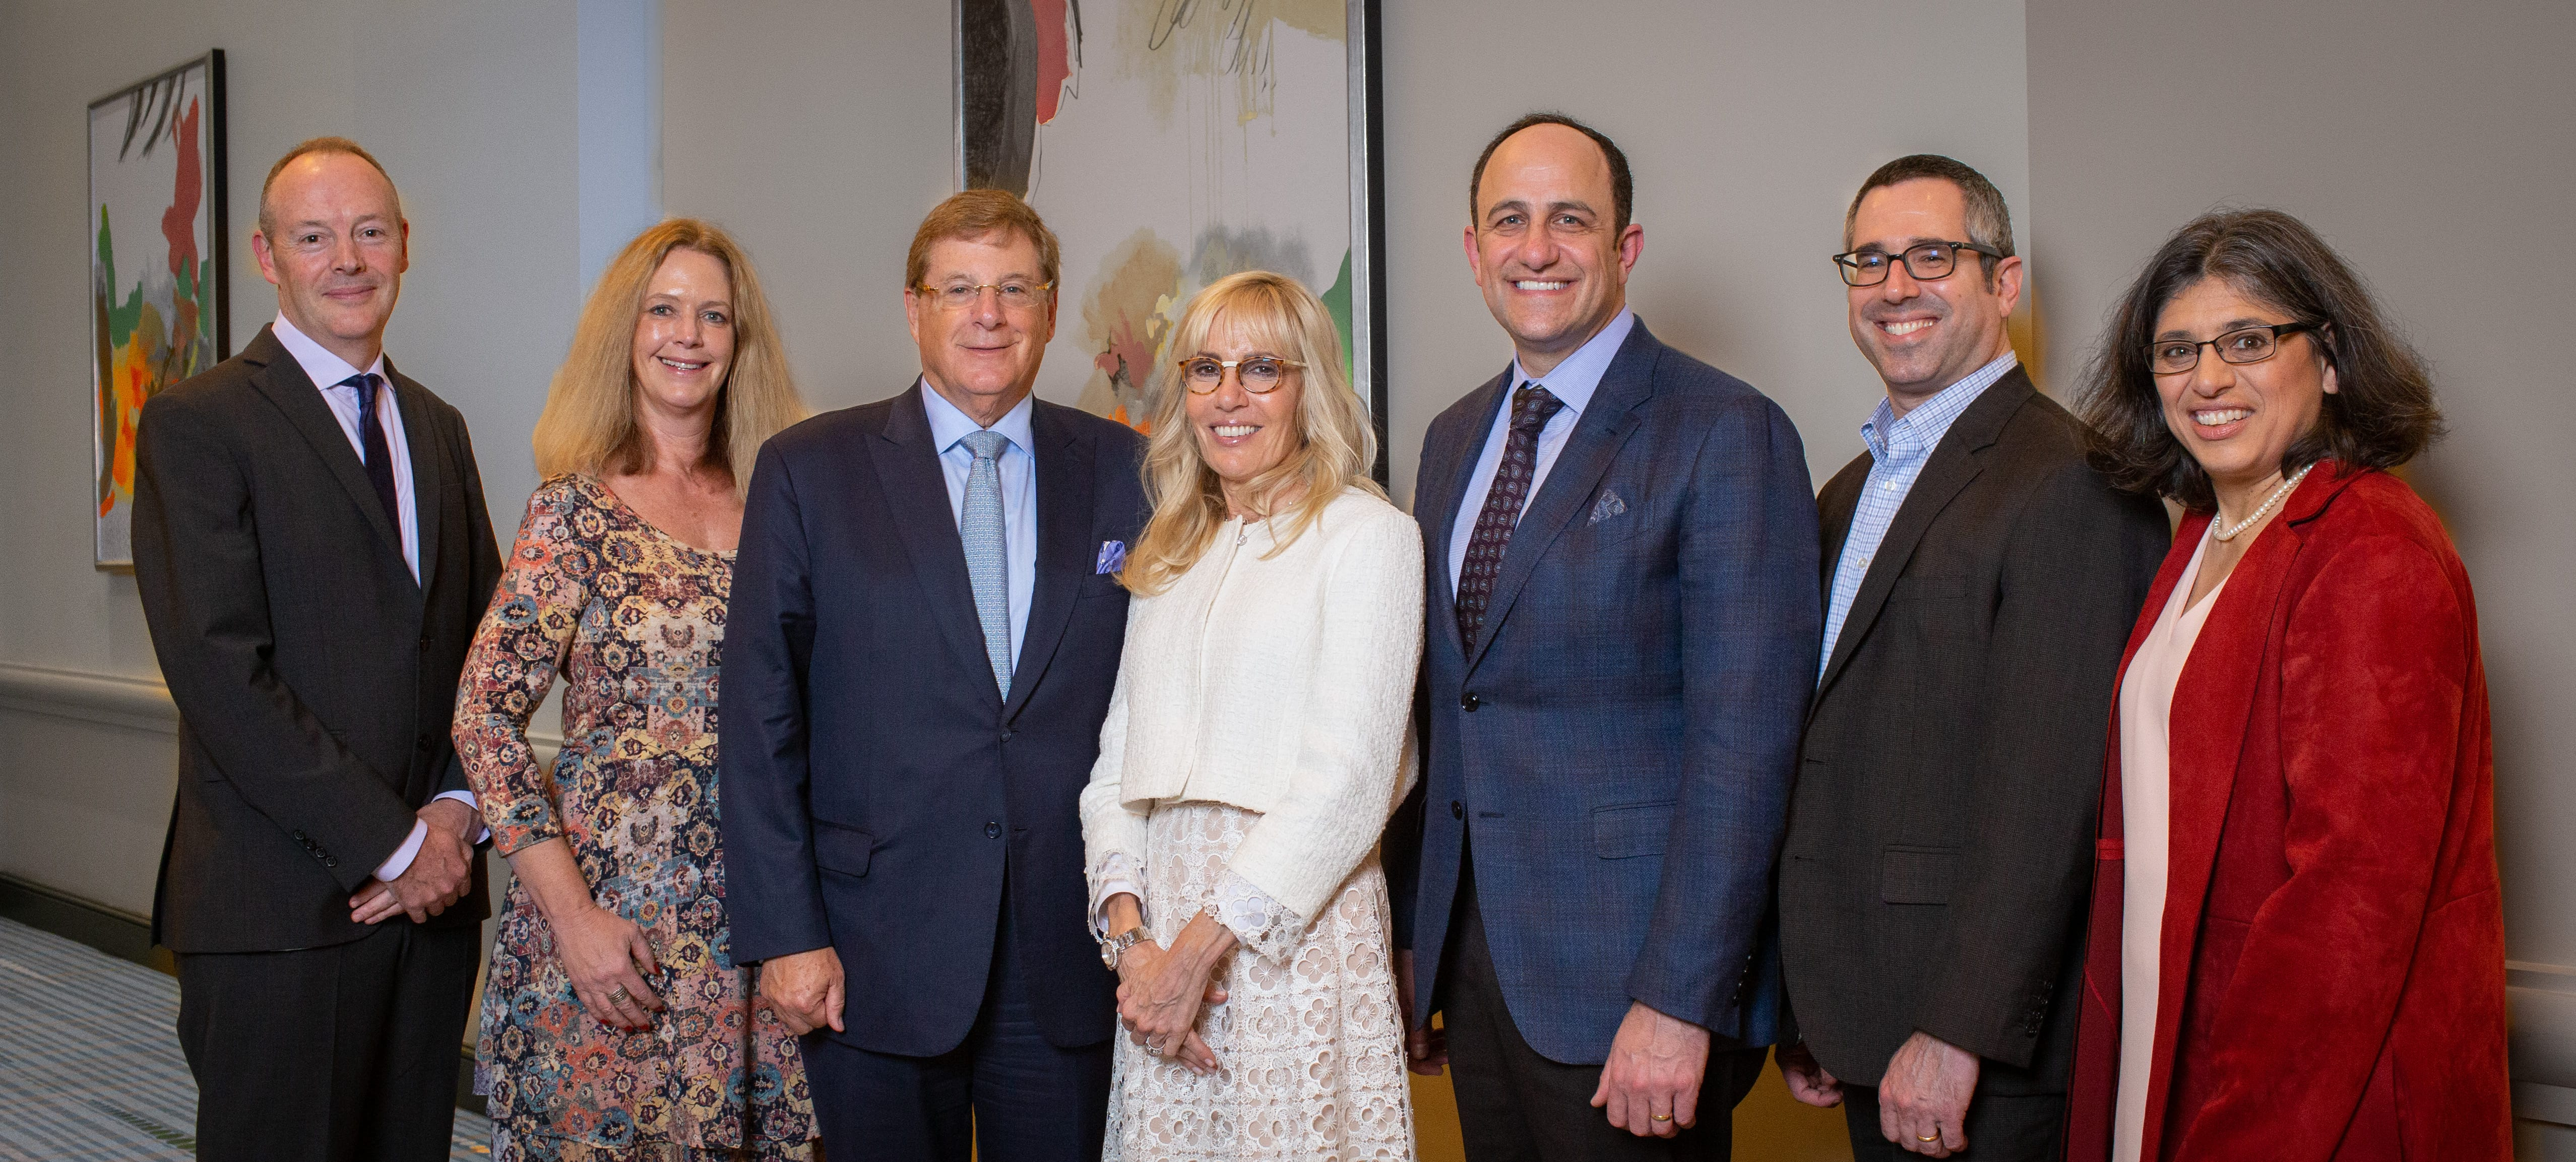 <p>Bruce and Cynthia Sherman with the 2018 Selection Committee</p>